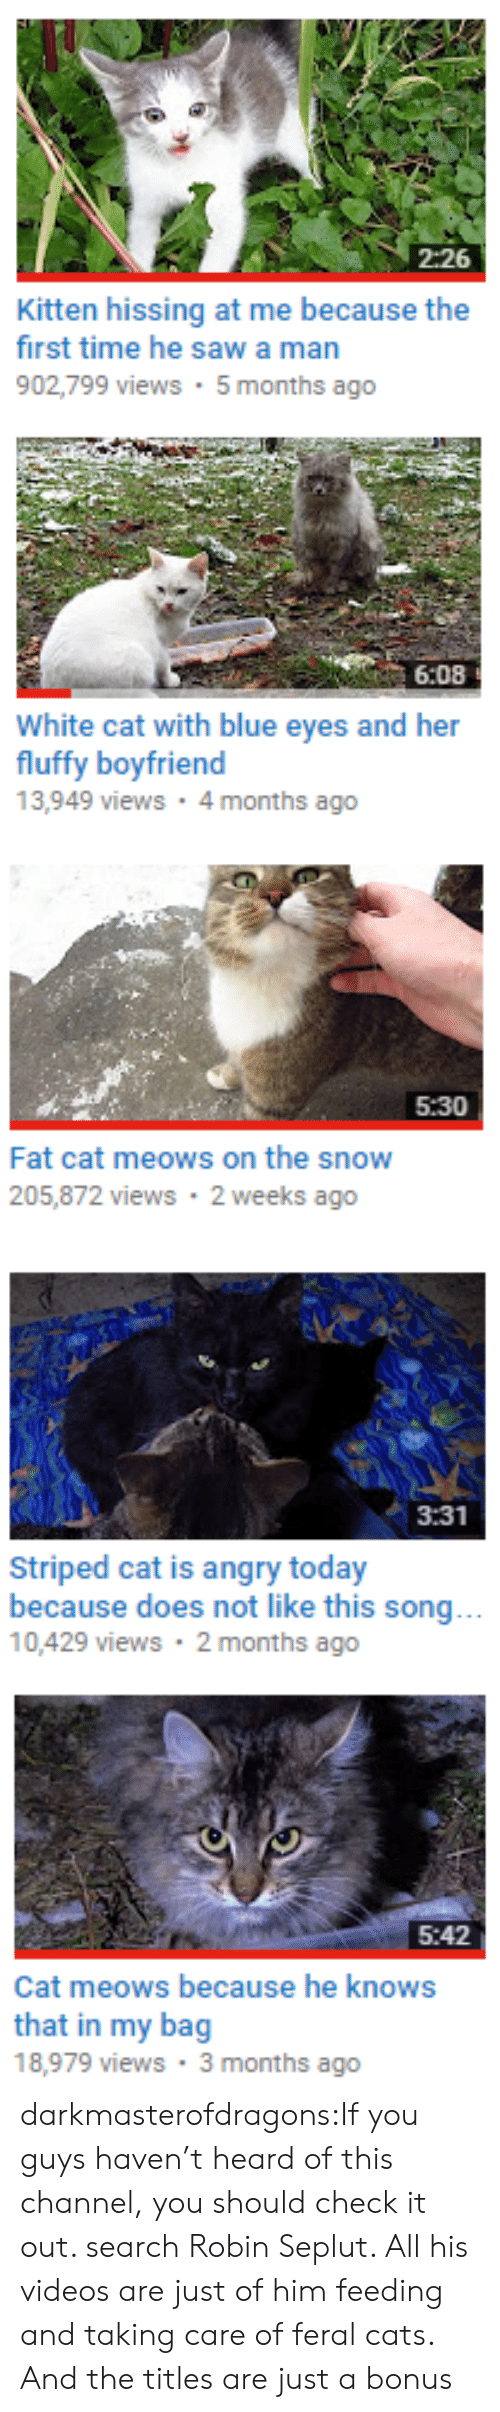 Cats, Tumblr, and Videos: 2:26  Kitten hissing at me because the  first time he sawa man  902,799 views 5 months ago   6:08  White cat with blue eyes and her  fluffy boyfriend  13,949 views 4 months ago   5:30  Fat cat meows on the snow  205,872 views 2 weeks ago   3:31  Striped cat is angry today  because does not like this song...  10,429 views 2 months ago   5:42  Cat meows because he knows  that in my bag  18,979 views 3 months ago darkmasterofdragons:If you guys haven't heard of this channel, you should check it out. search Robin Seplut. All his videos are just of him feeding and taking care of feral cats. And the titles are just a bonus